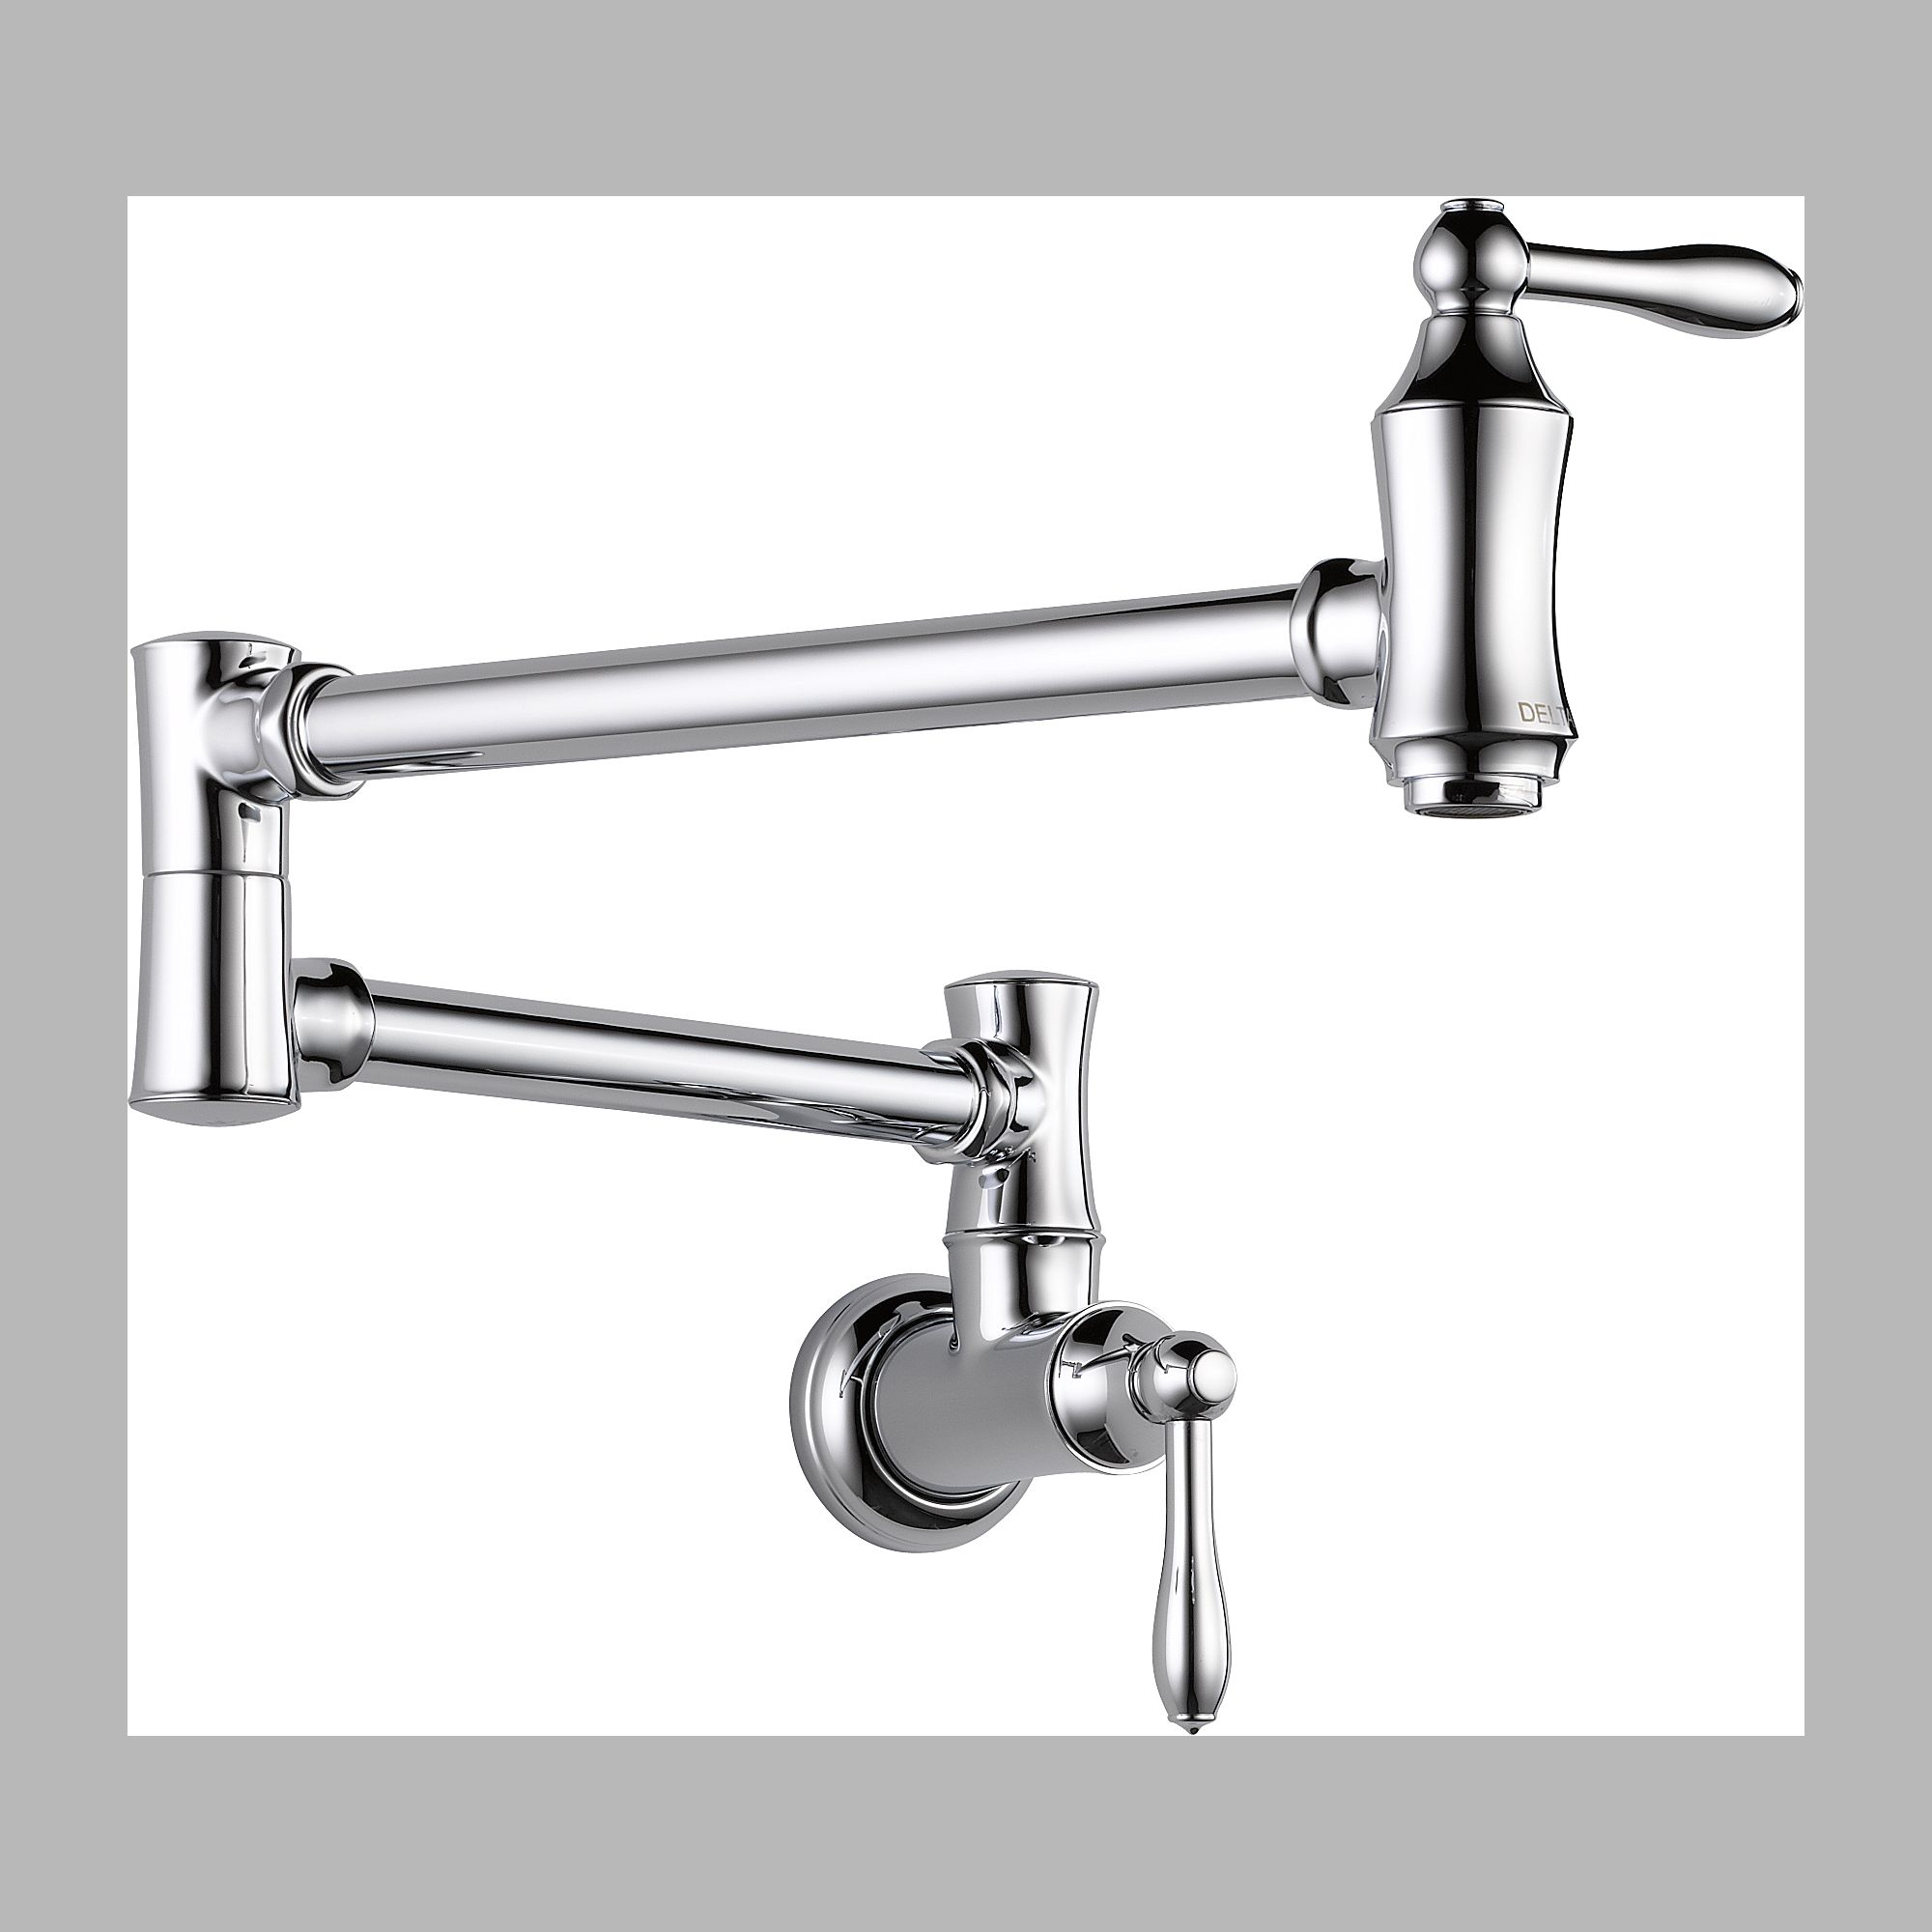 Delta 1177LF Pot Filler Faucet - Wall Mount